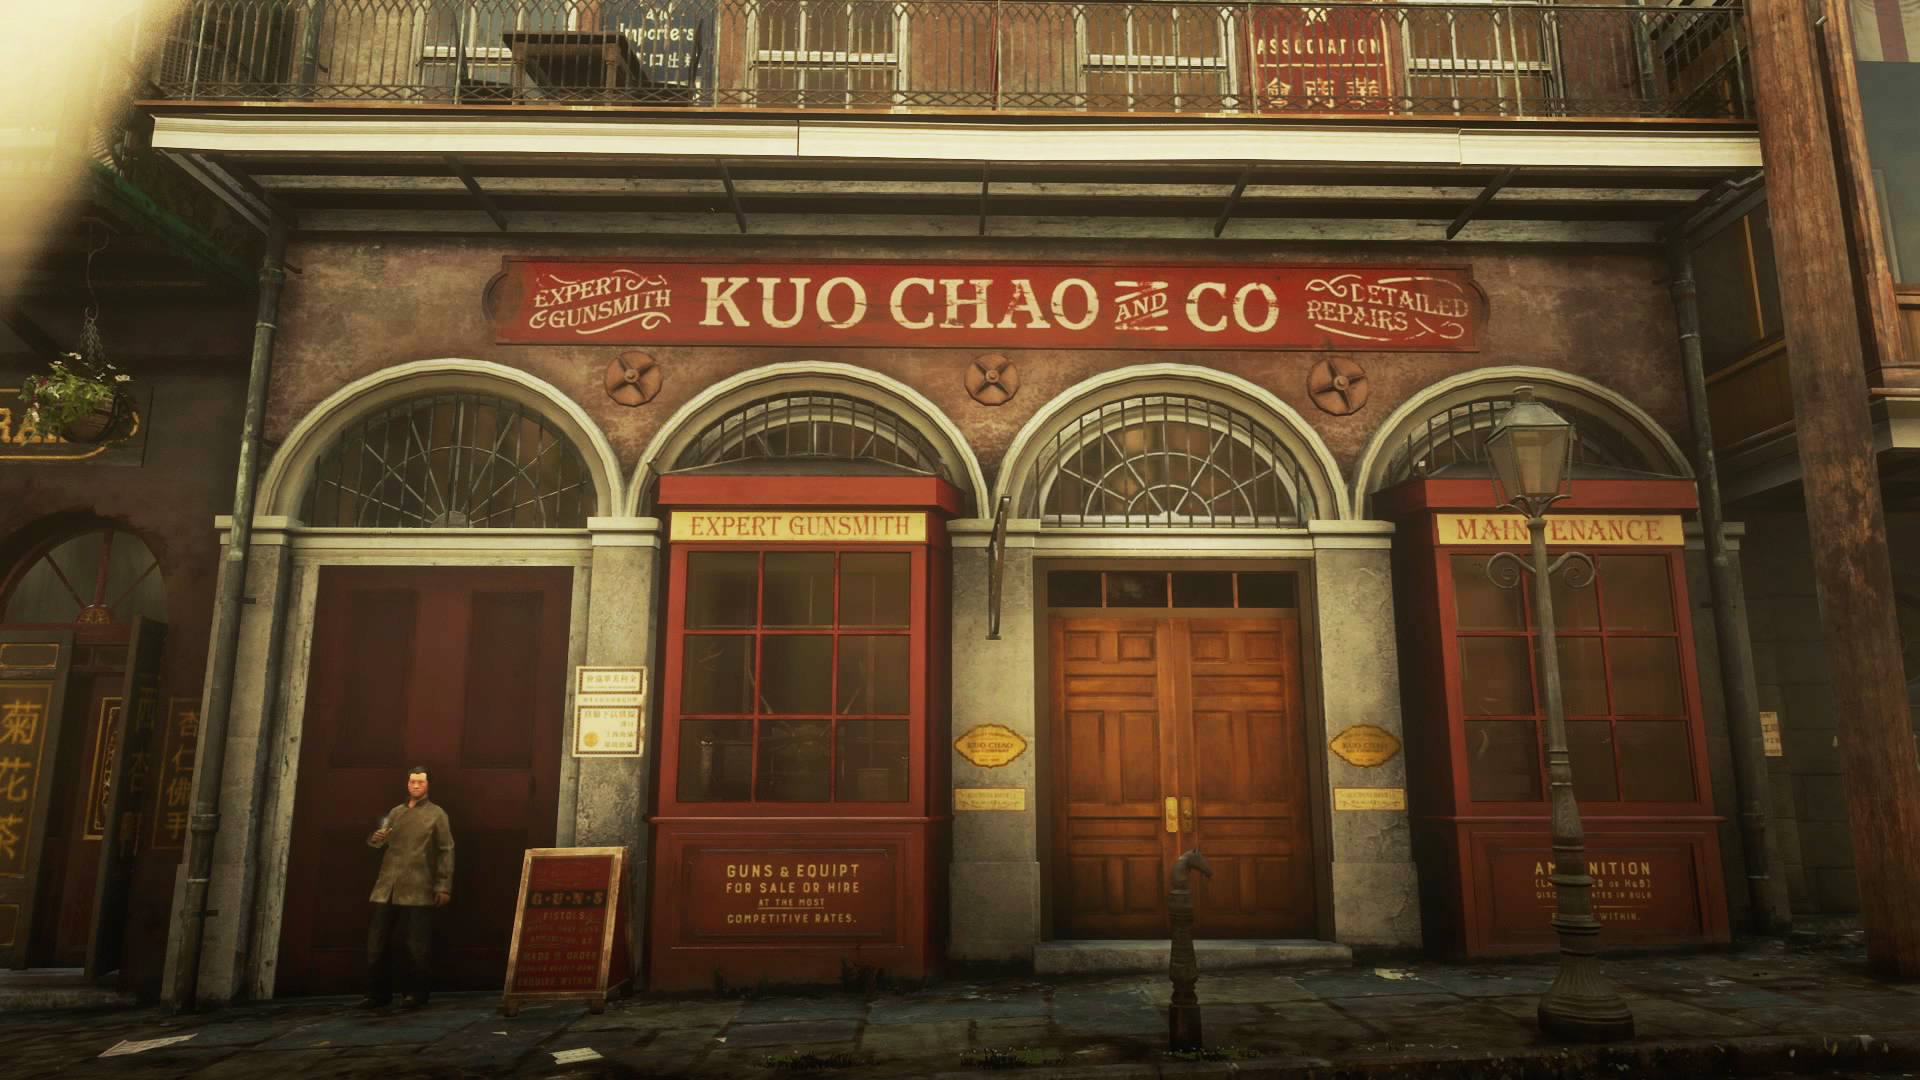 Kuo Chao & Co.